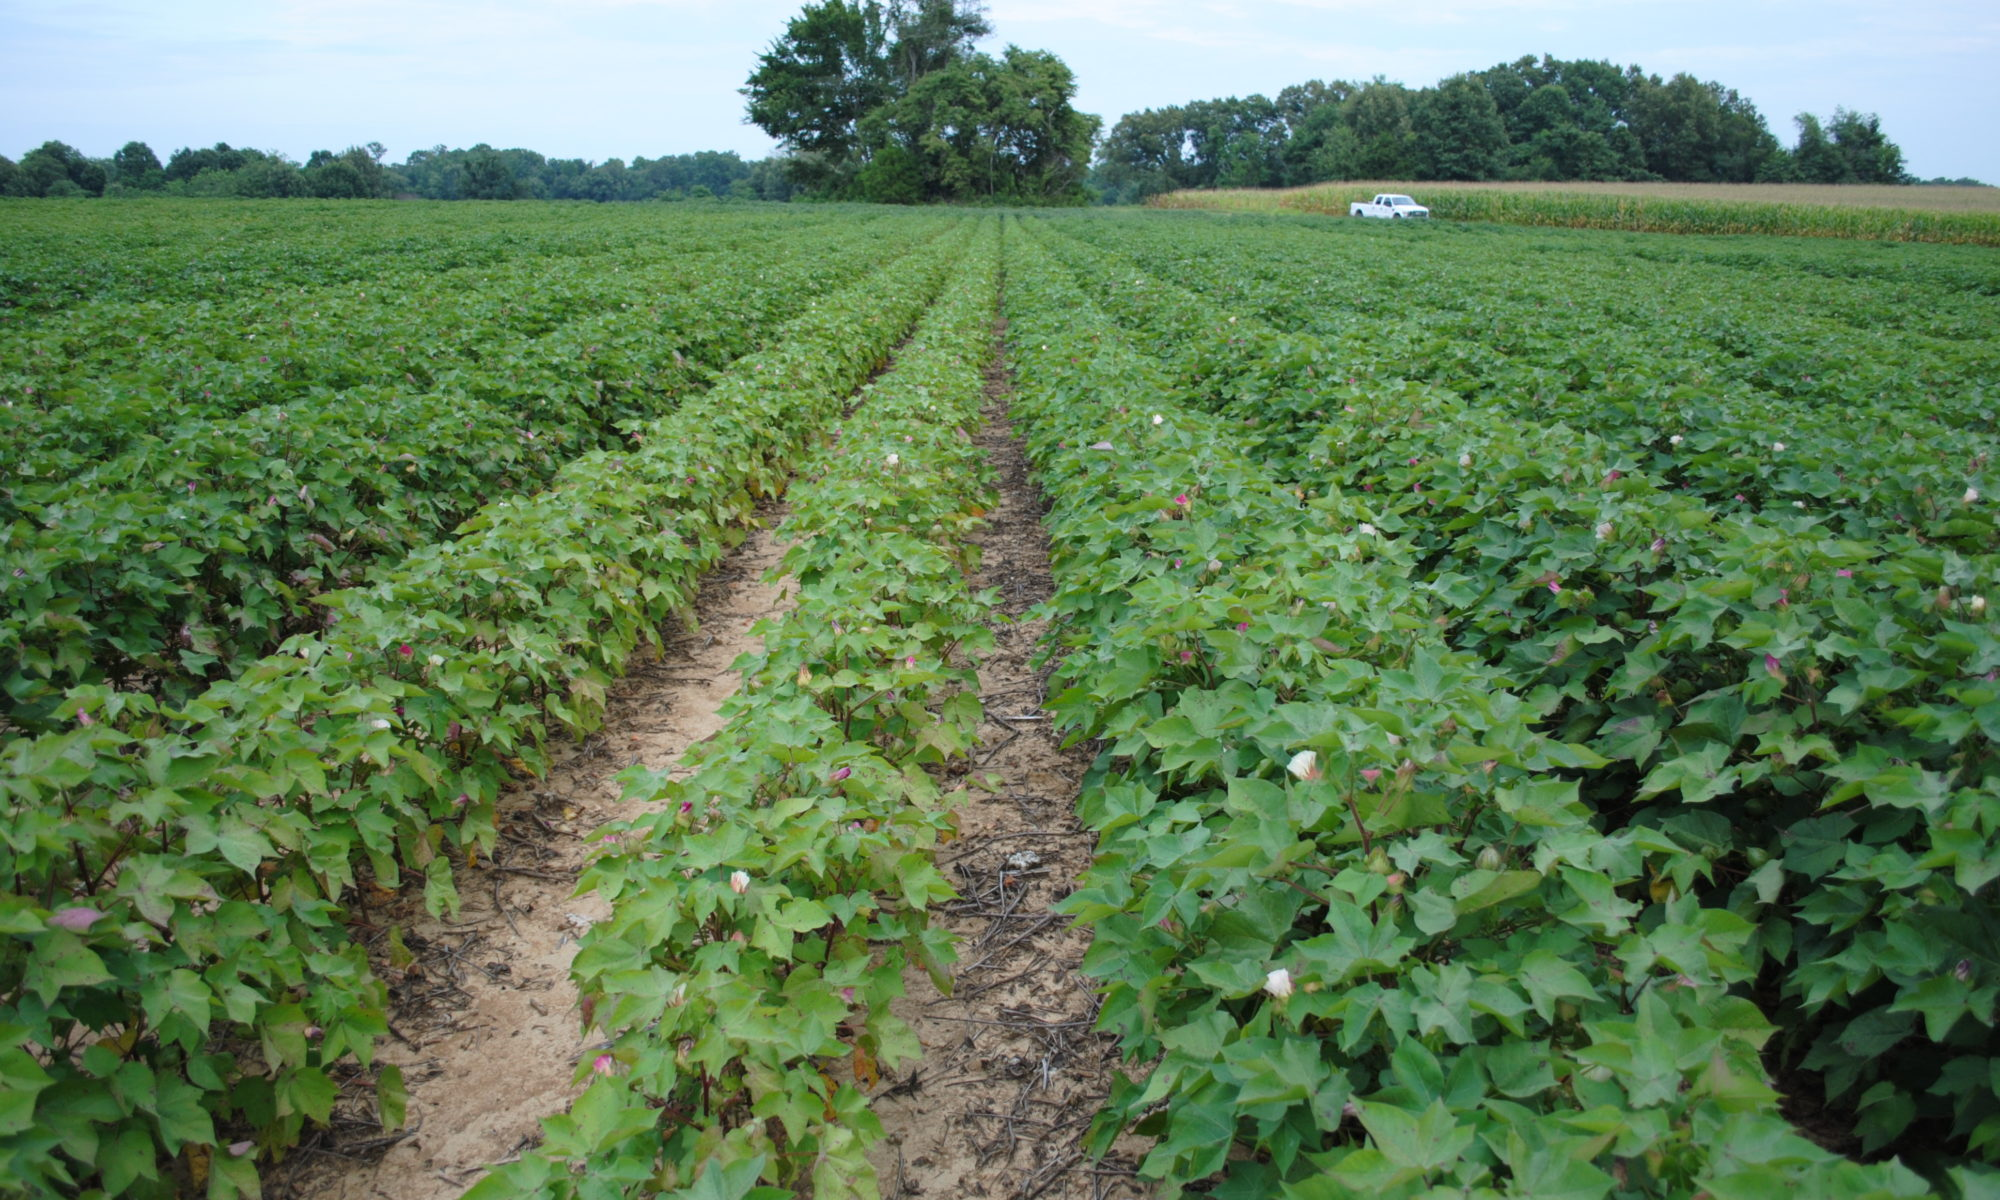 Picture of cotton growing in a field